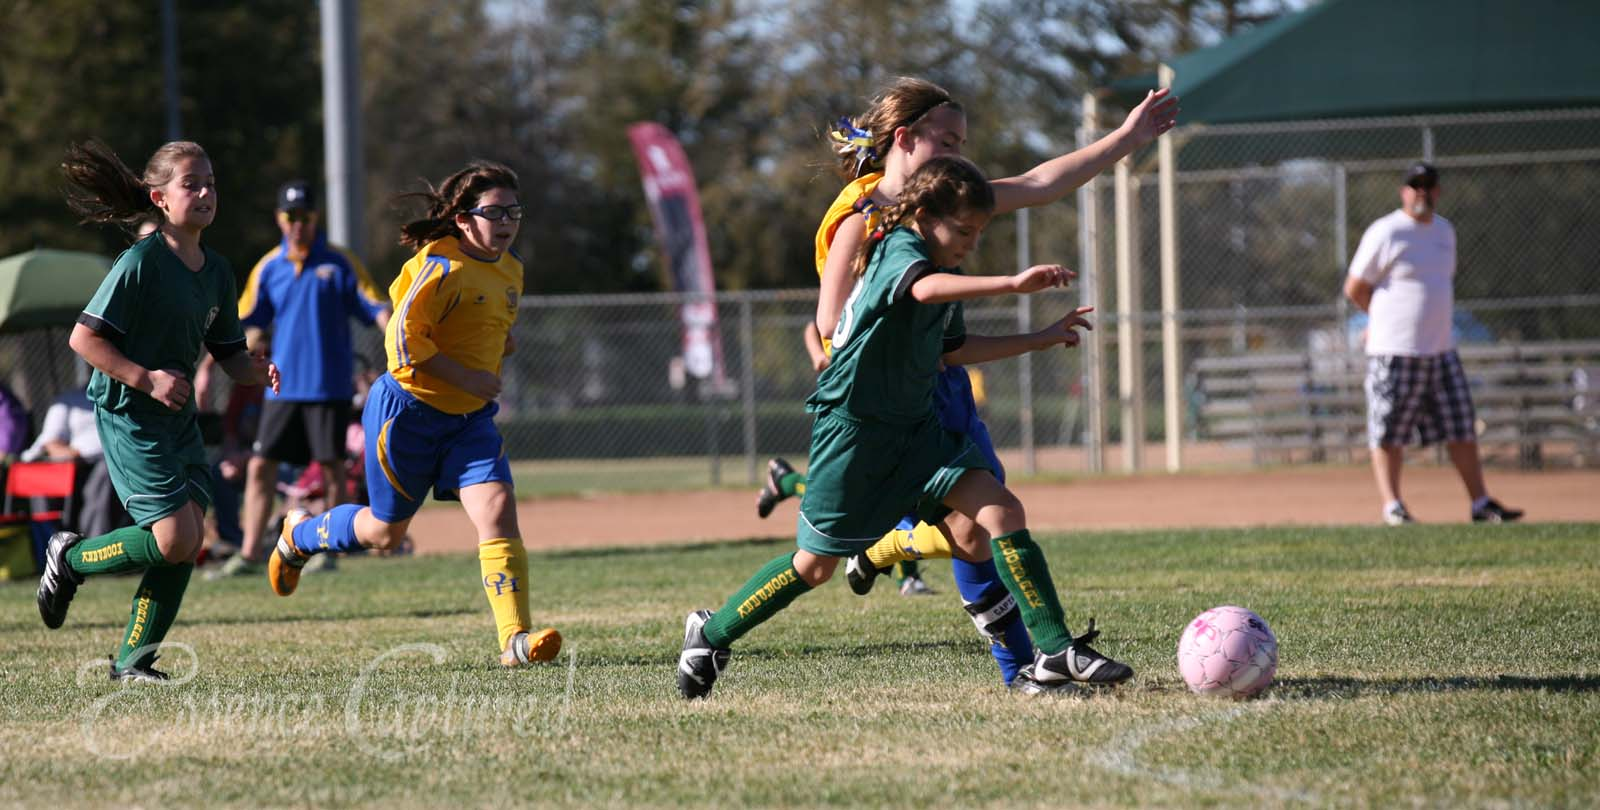 girls play soccer green jersey Conejo Valley